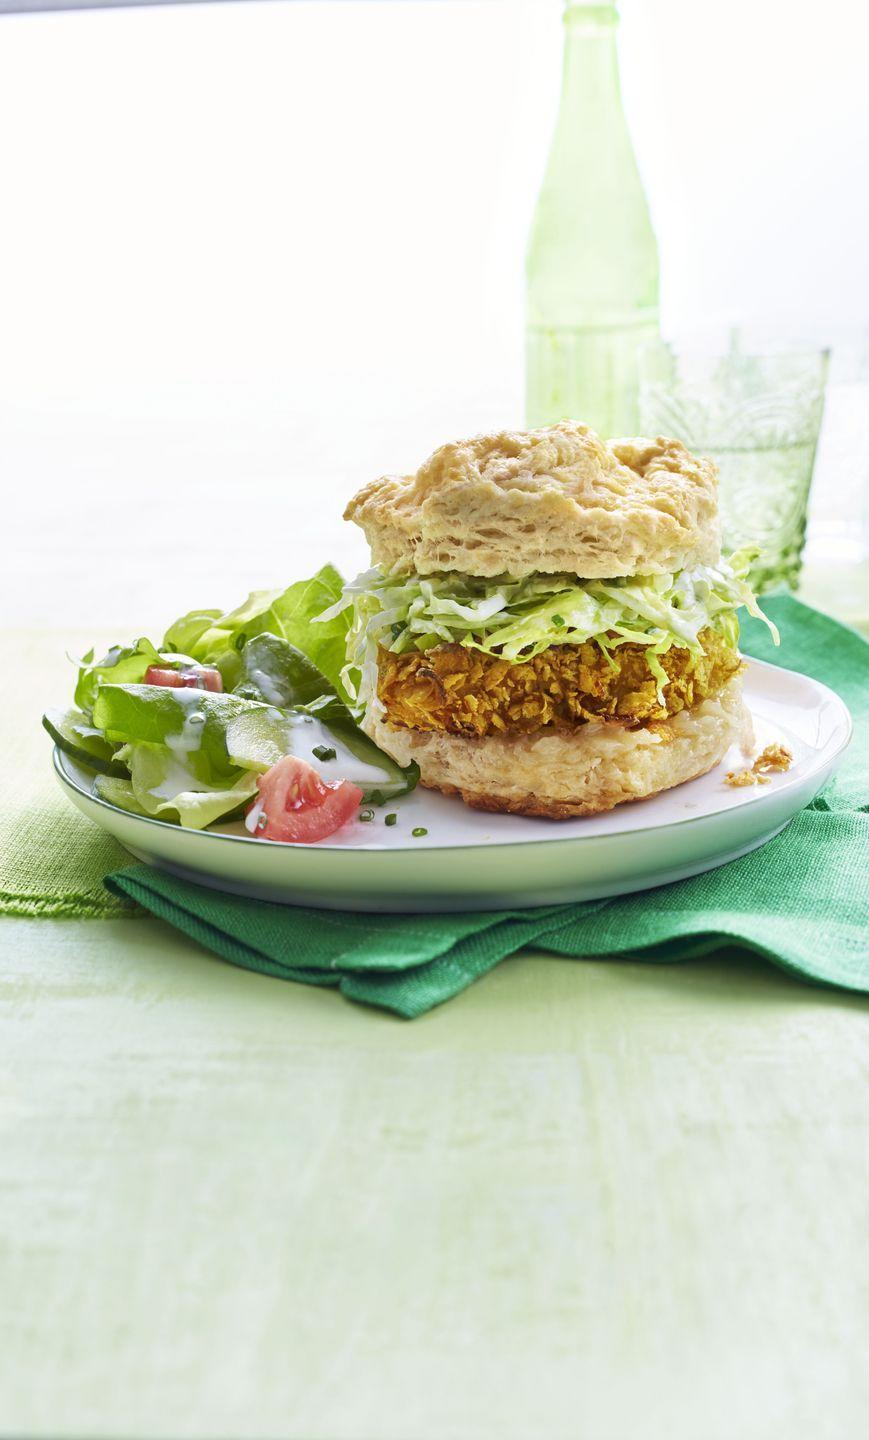 """<p>Baking this crunchy, crowd-pleasing favorite makes it much healthier and lower in fat than a traditional fried chicken recipe.</p><p><em><a href=""""https://www.goodhousekeeping.com/food-recipes/a14849/crispy-baked-chicken-recipe-wdy0315/"""" rel=""""nofollow noopener"""" target=""""_blank"""" data-ylk=""""slk:Get the recipe for Crispy Baked Chicken »"""" class=""""link rapid-noclick-resp"""">Get the recipe for Crispy Baked Chicken »</a></em></p>"""